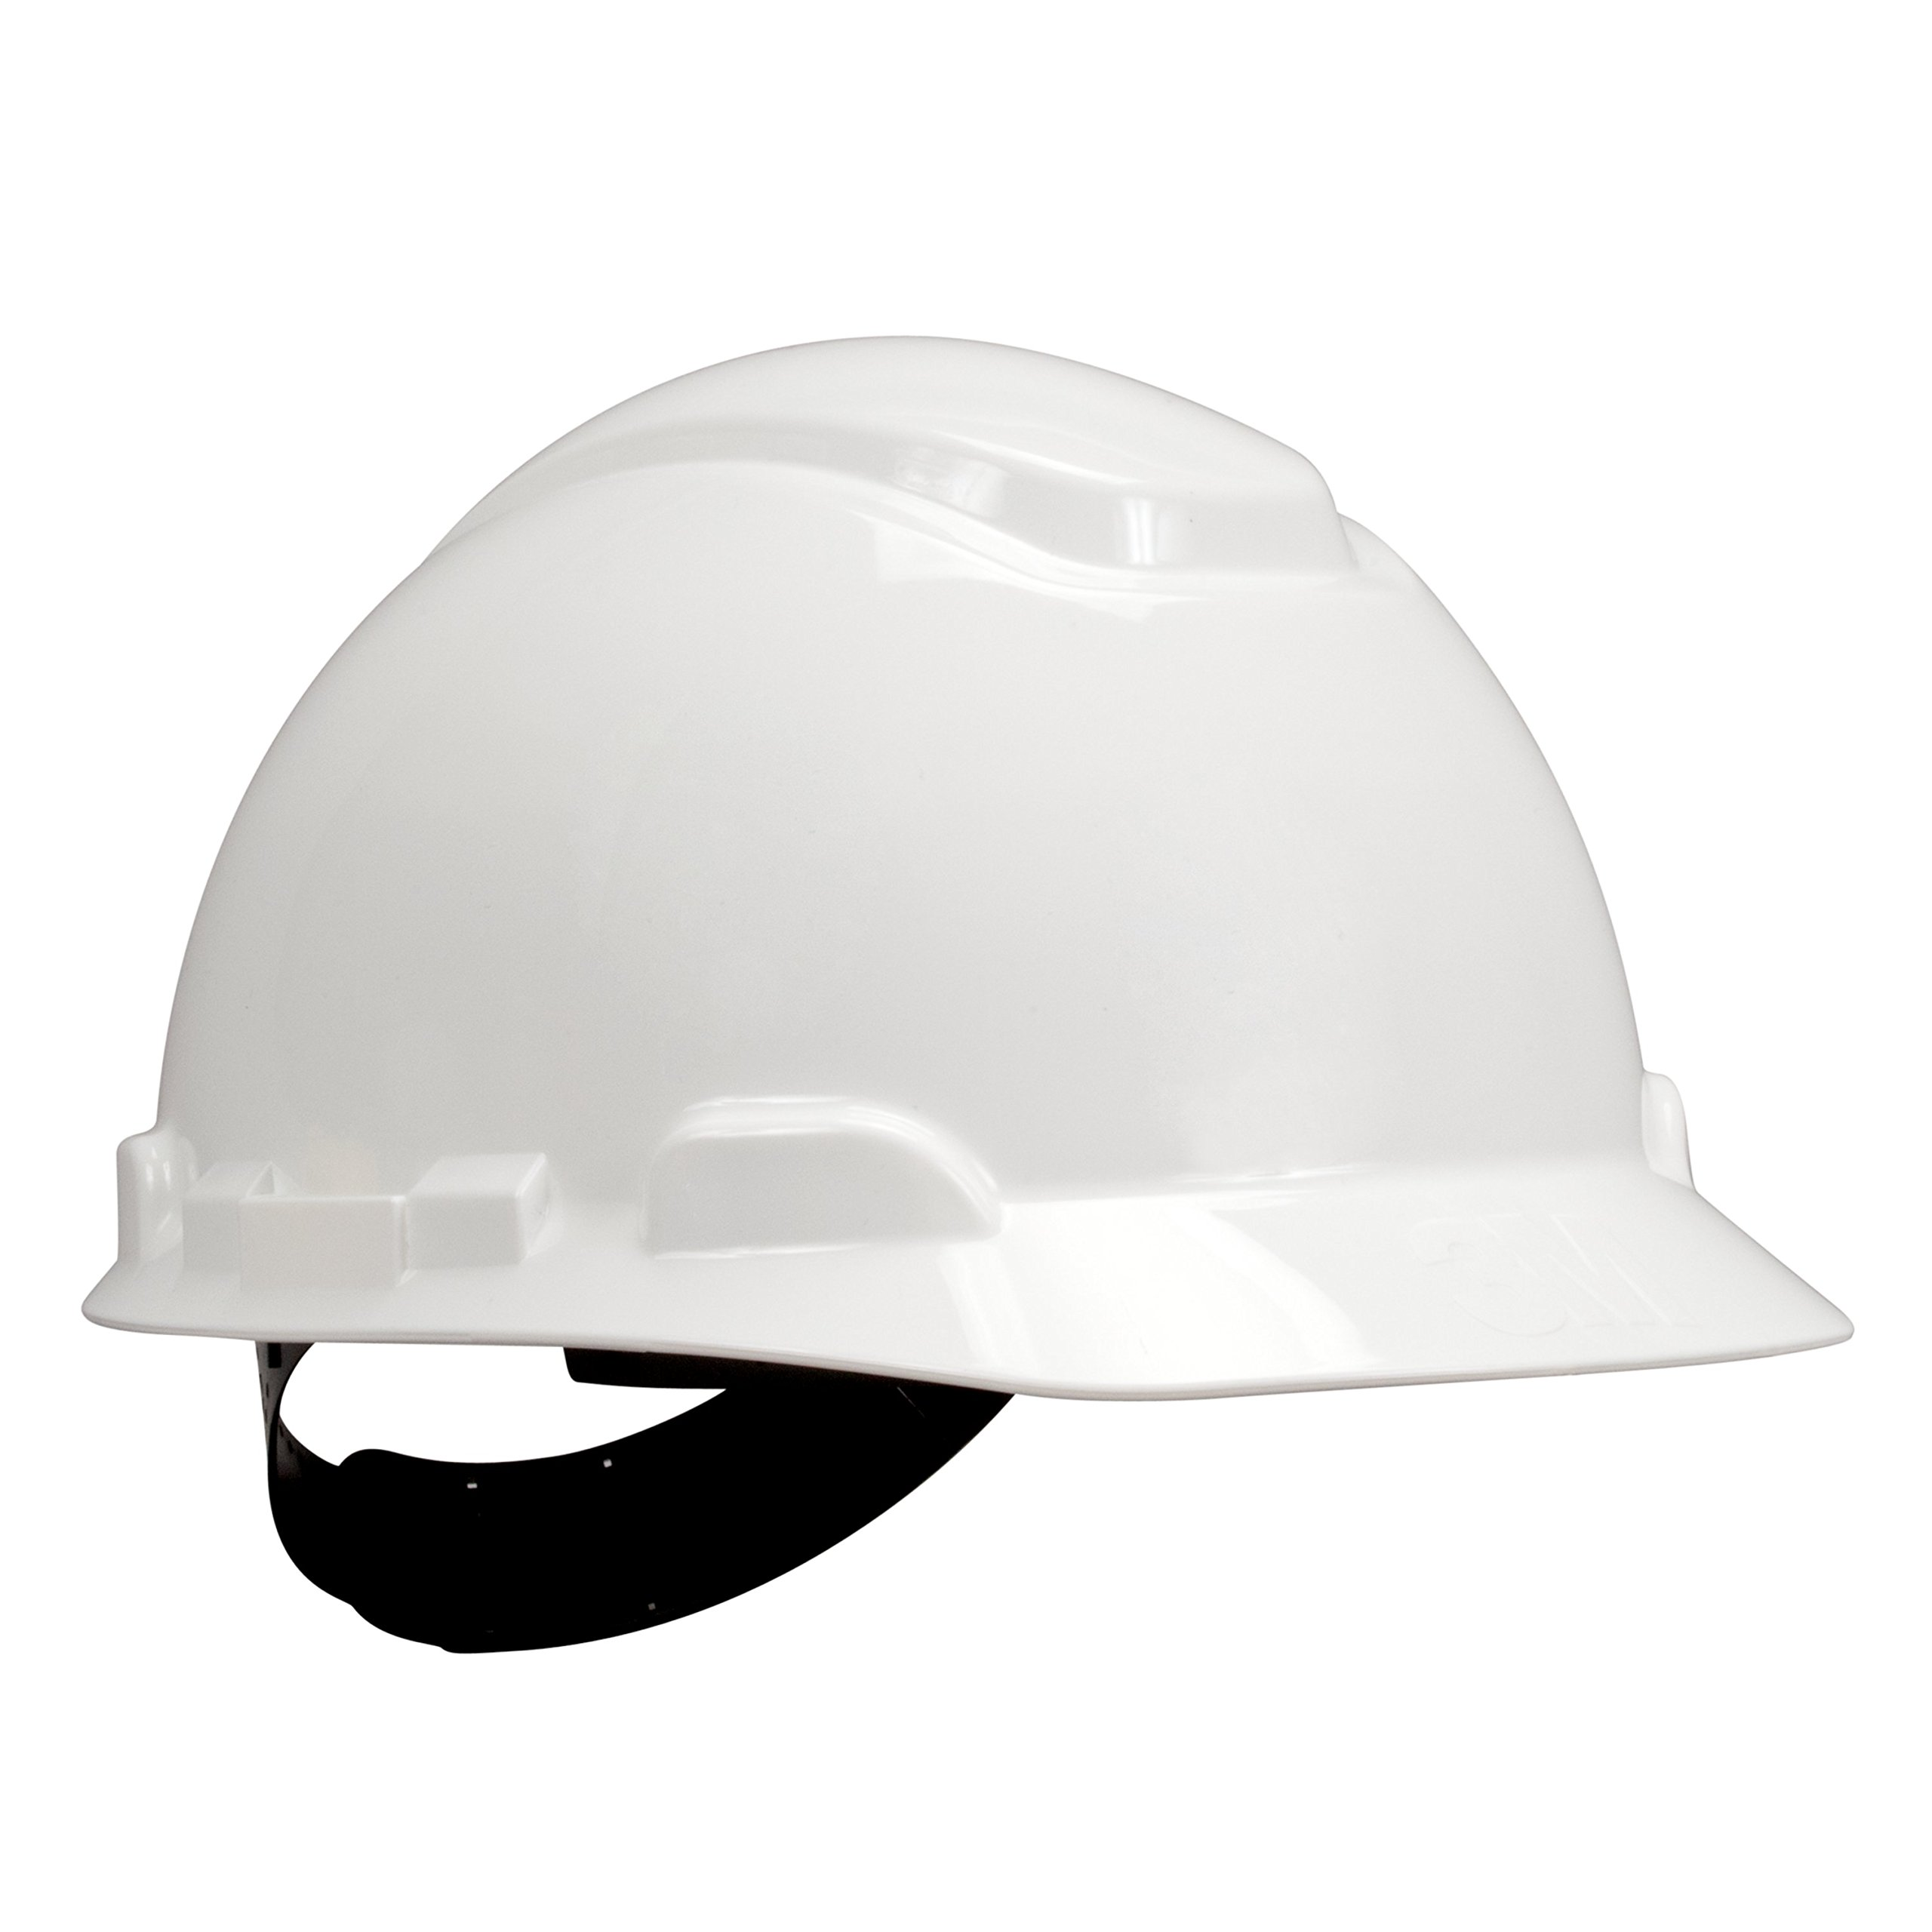 3M H-701P White Short Brim Hard Hat - 4-Point Suspension - Pin Lock Adjustment - Accessory Slots, Reversible Suspension - 70071577822 [20 EA PER CASE]